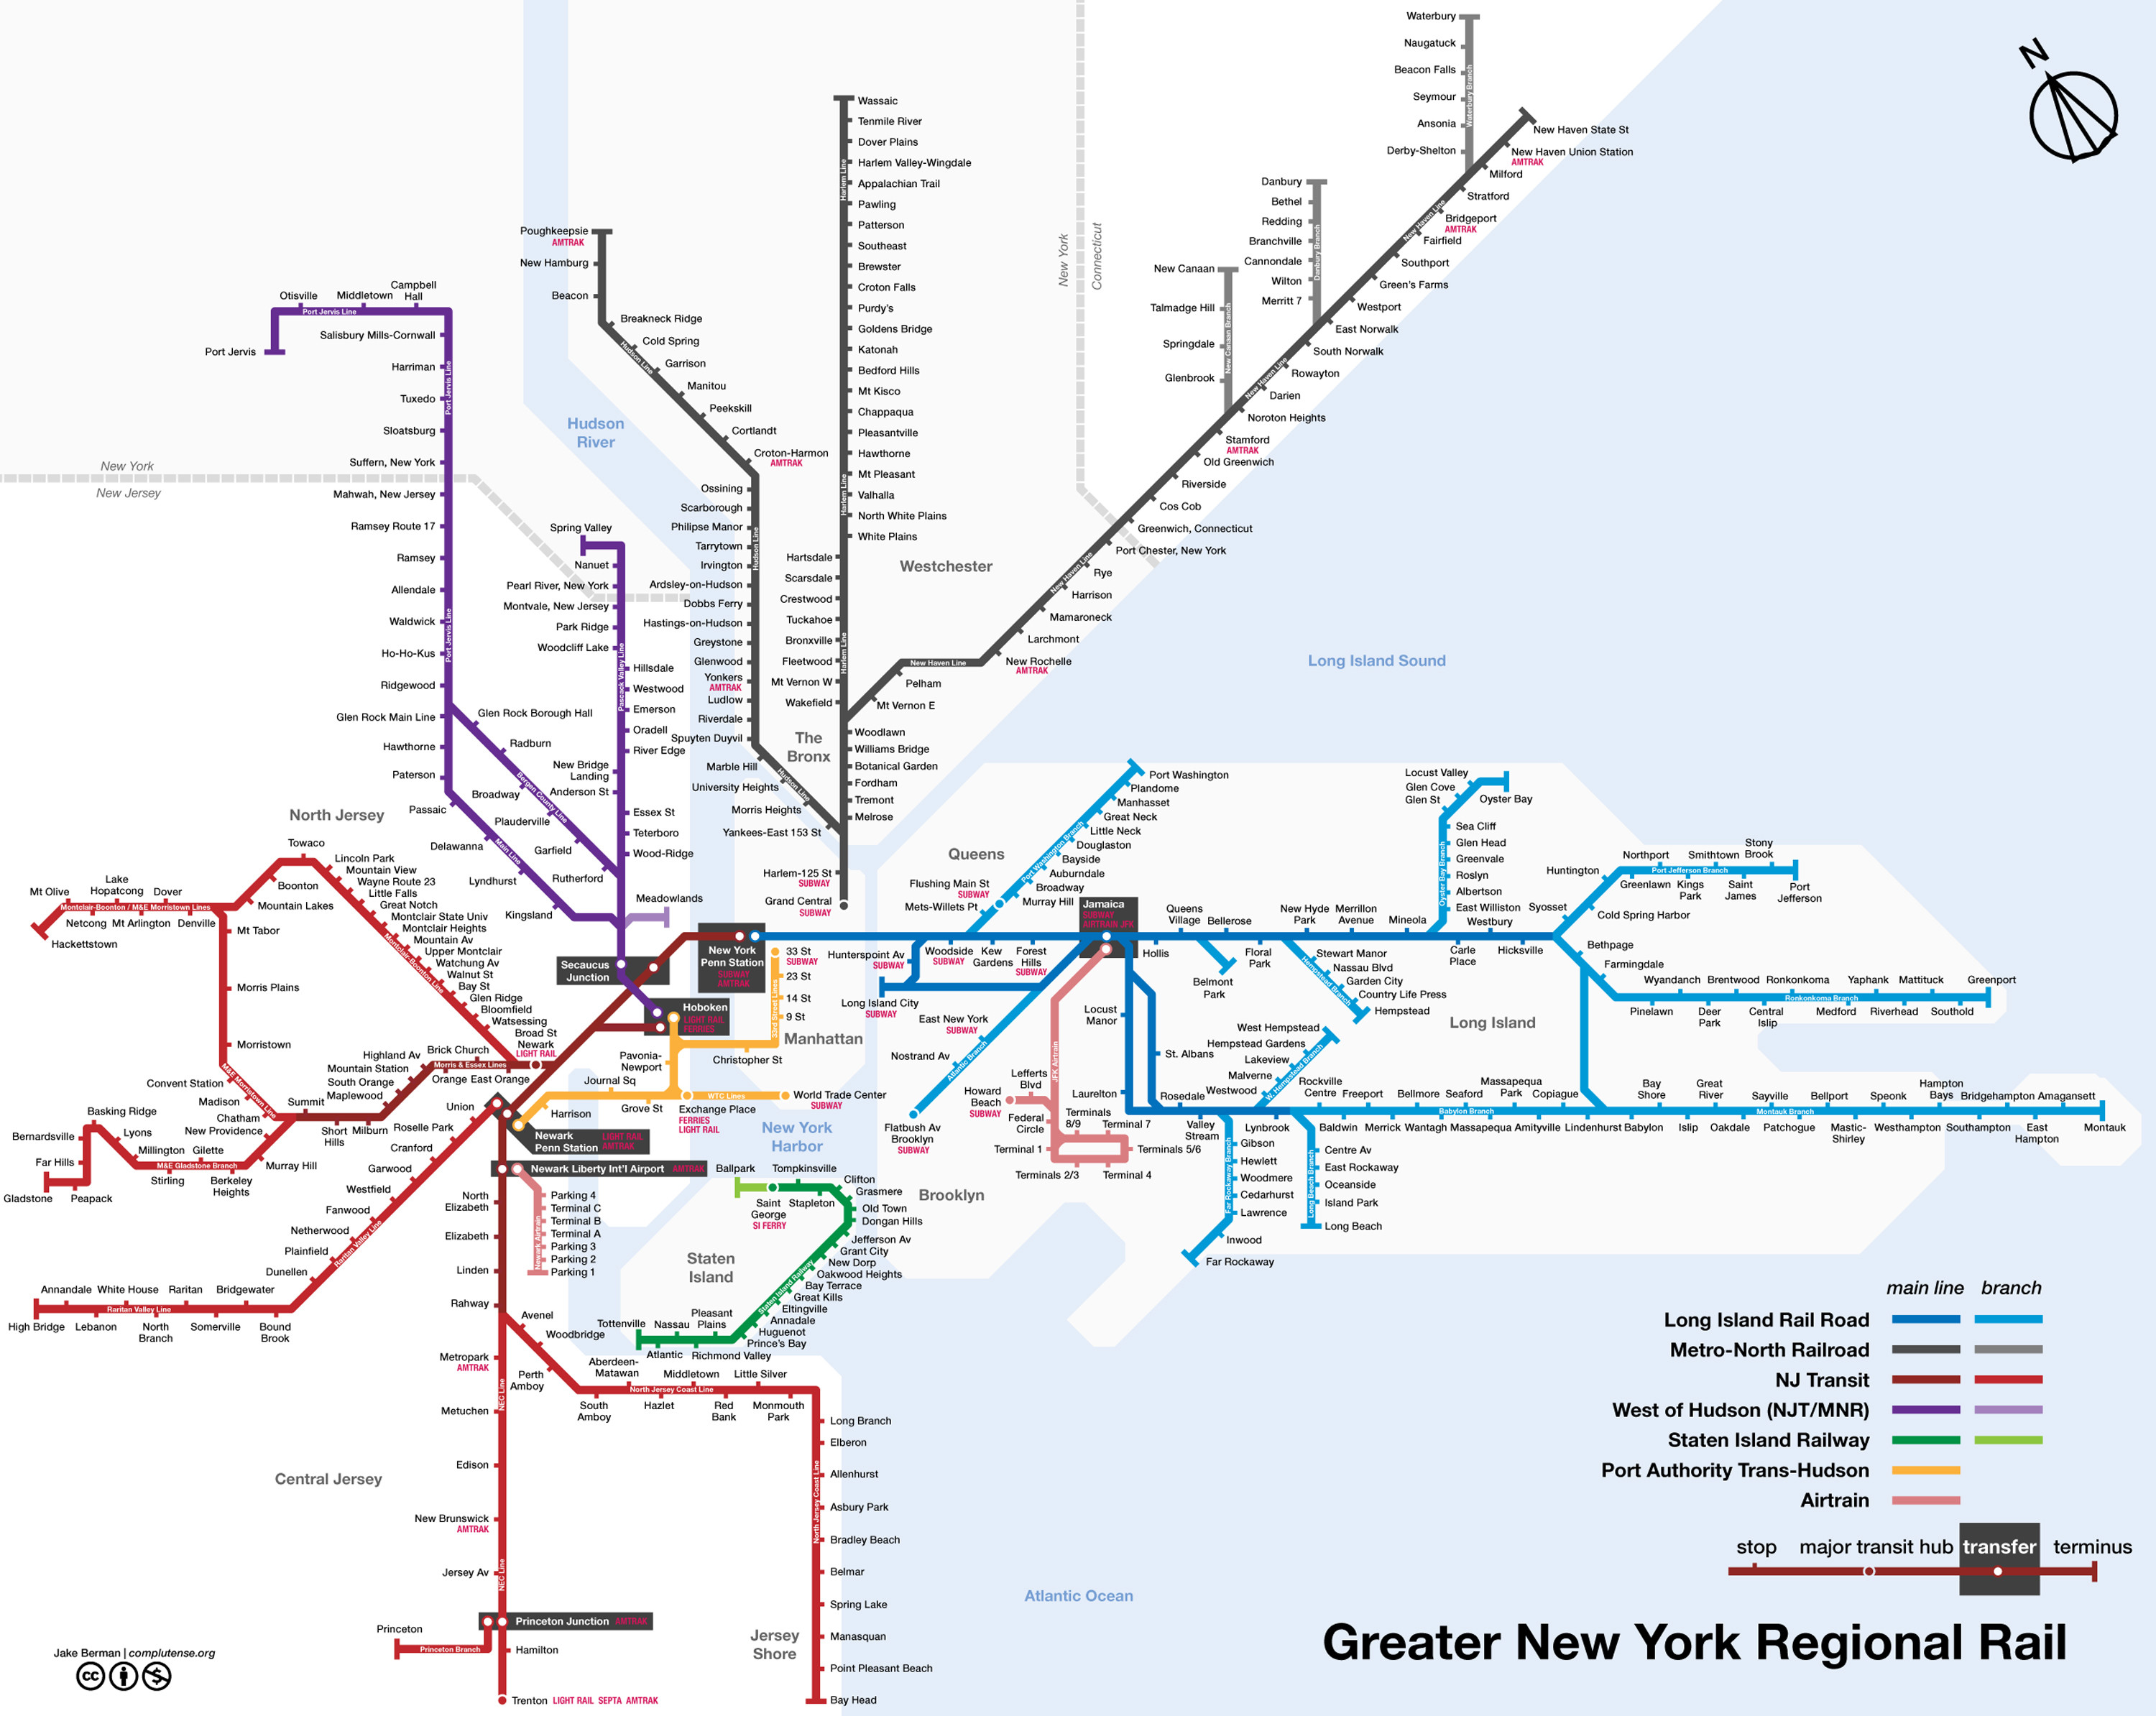 Subway Map From New Jersey To New York.New York City Subway Map Chameleon Web Services